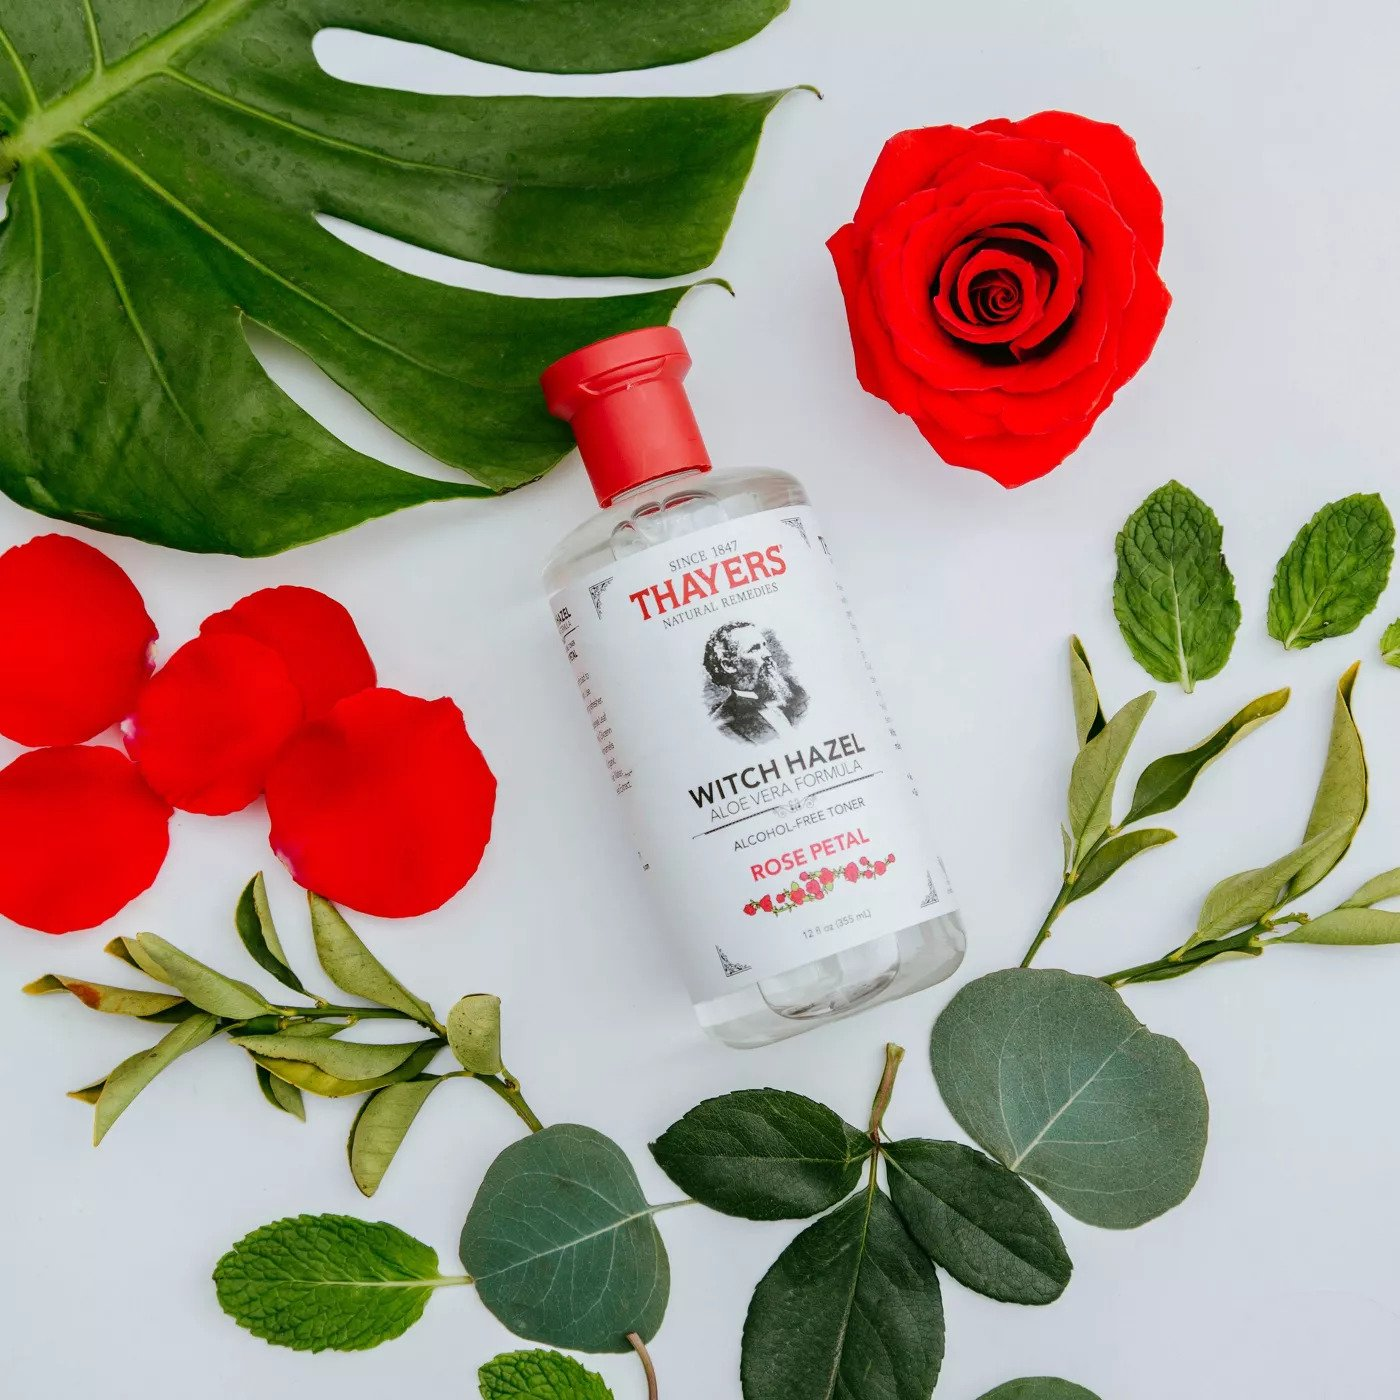 Thayers Witch Hazel Alcohol-Free Toner with Rose Petal